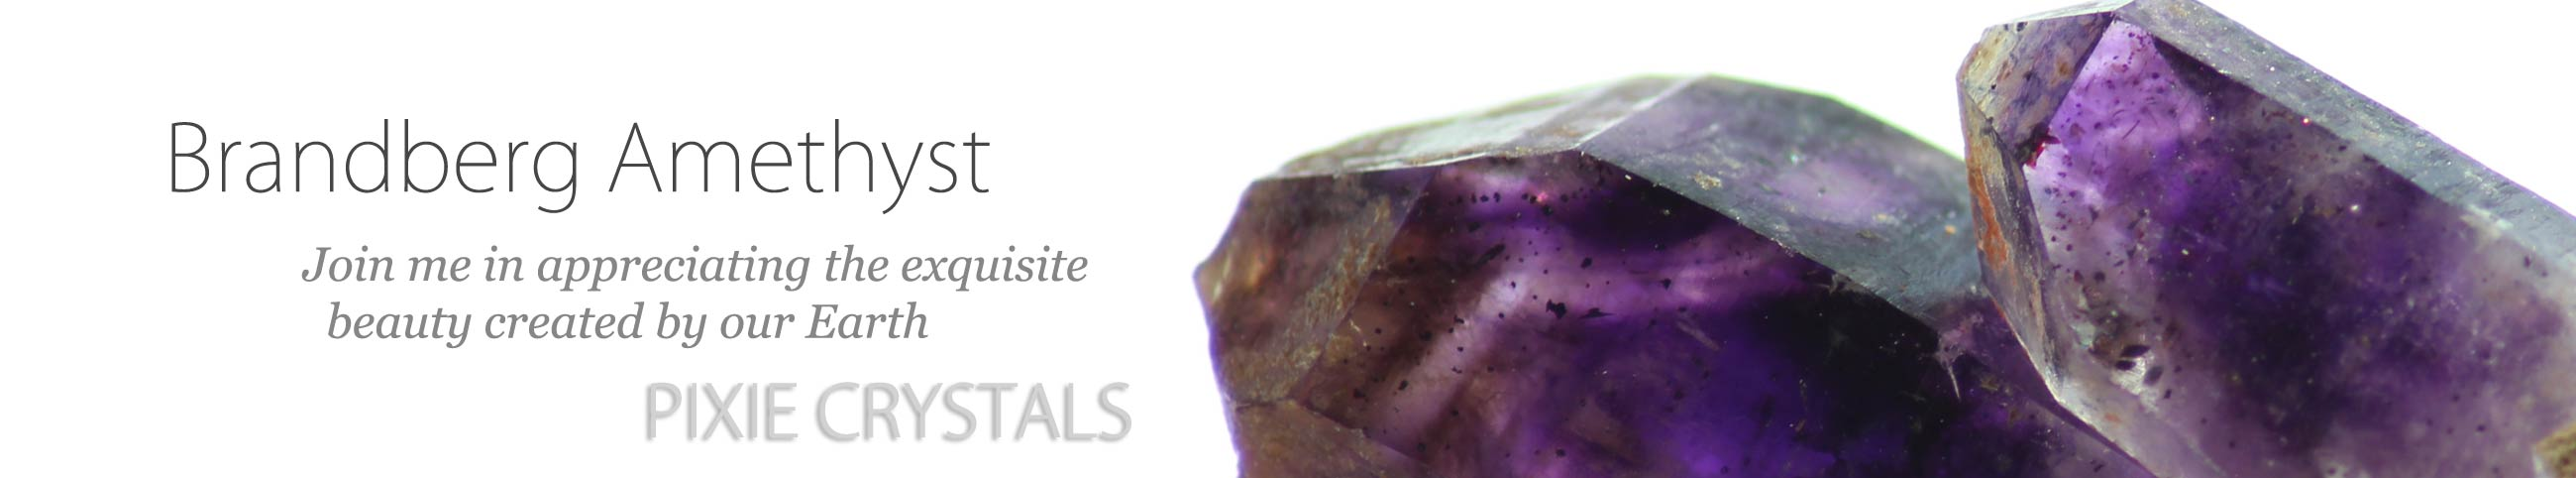 Brandberg Amethyst Twin with phantoms